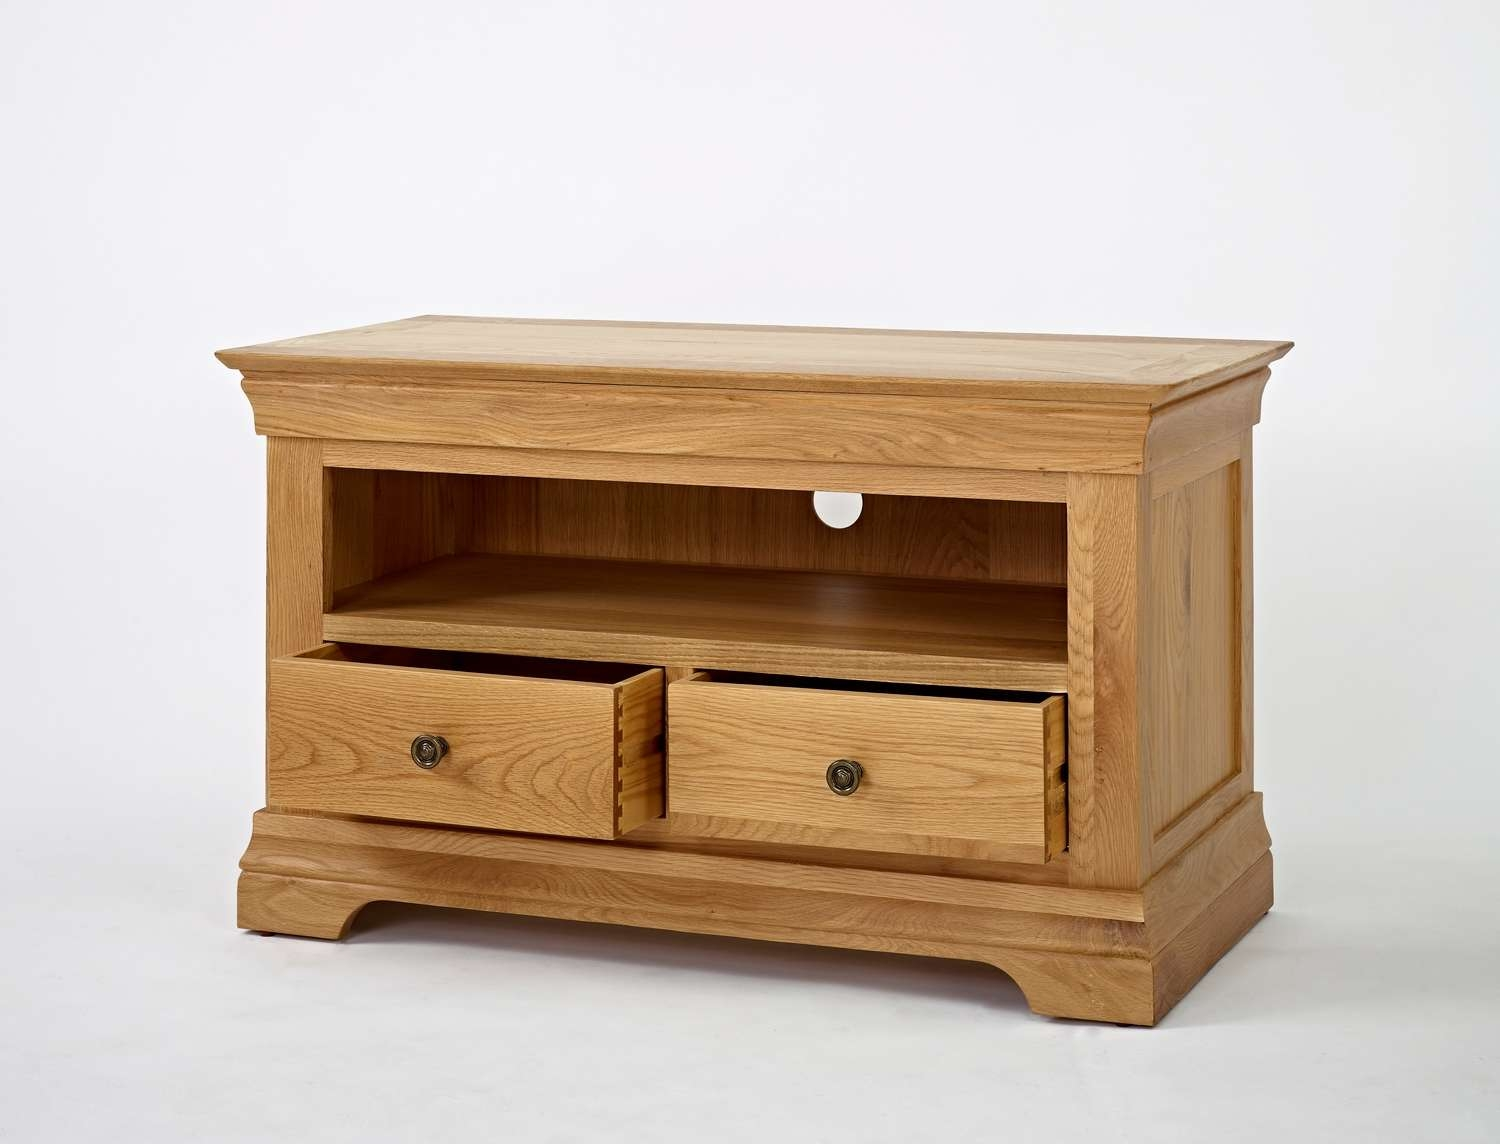 French Modern Oak Small Tv Unit | Hampshire Furniture Pertaining To Small Oak Tv Cabinets (View 7 of 20)